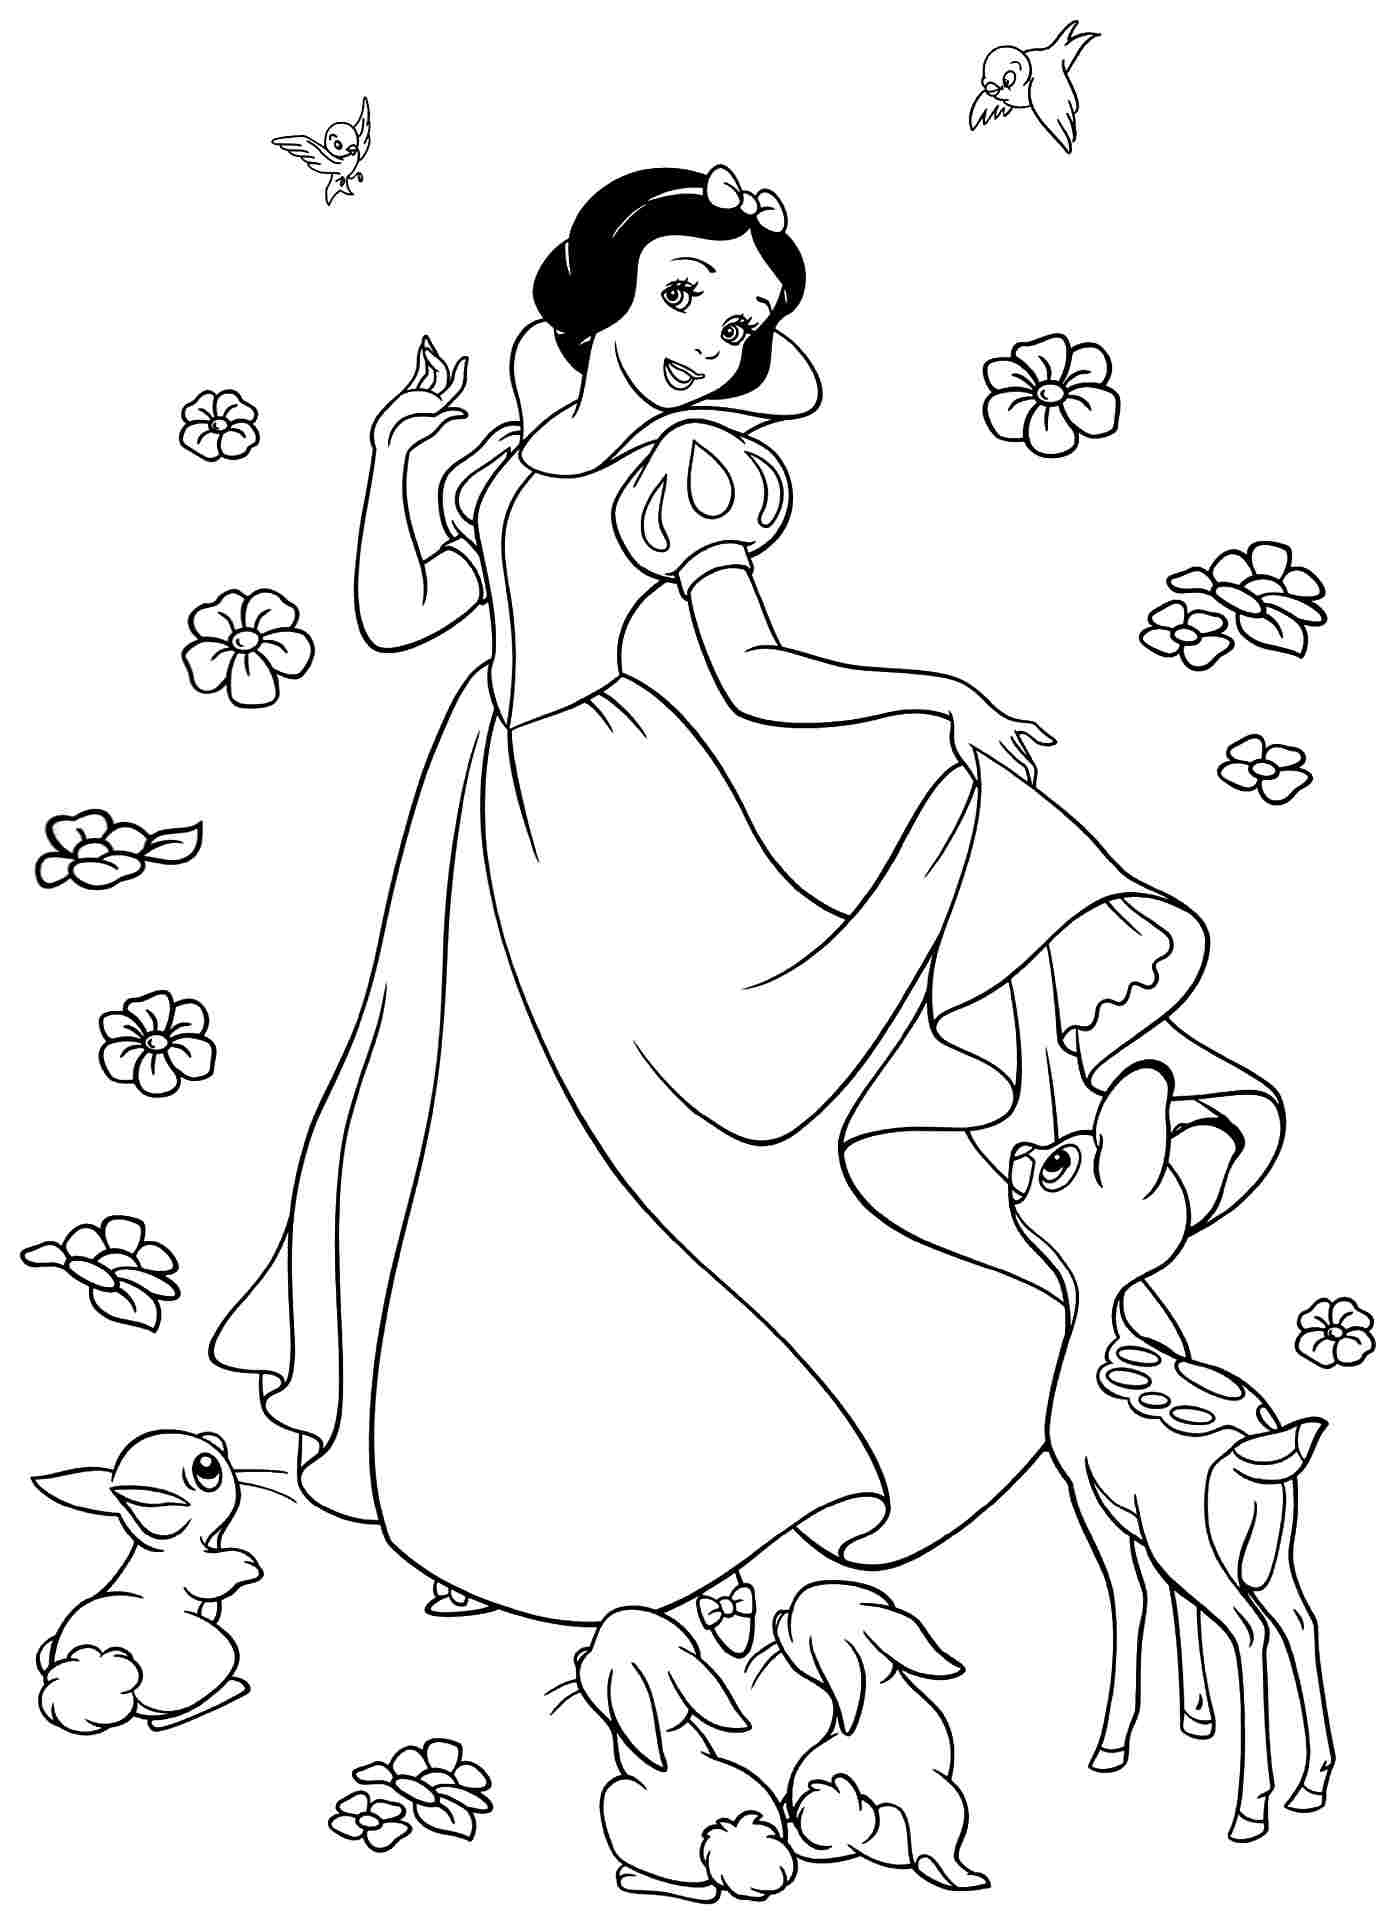 snpw white coloring pages - photo#22